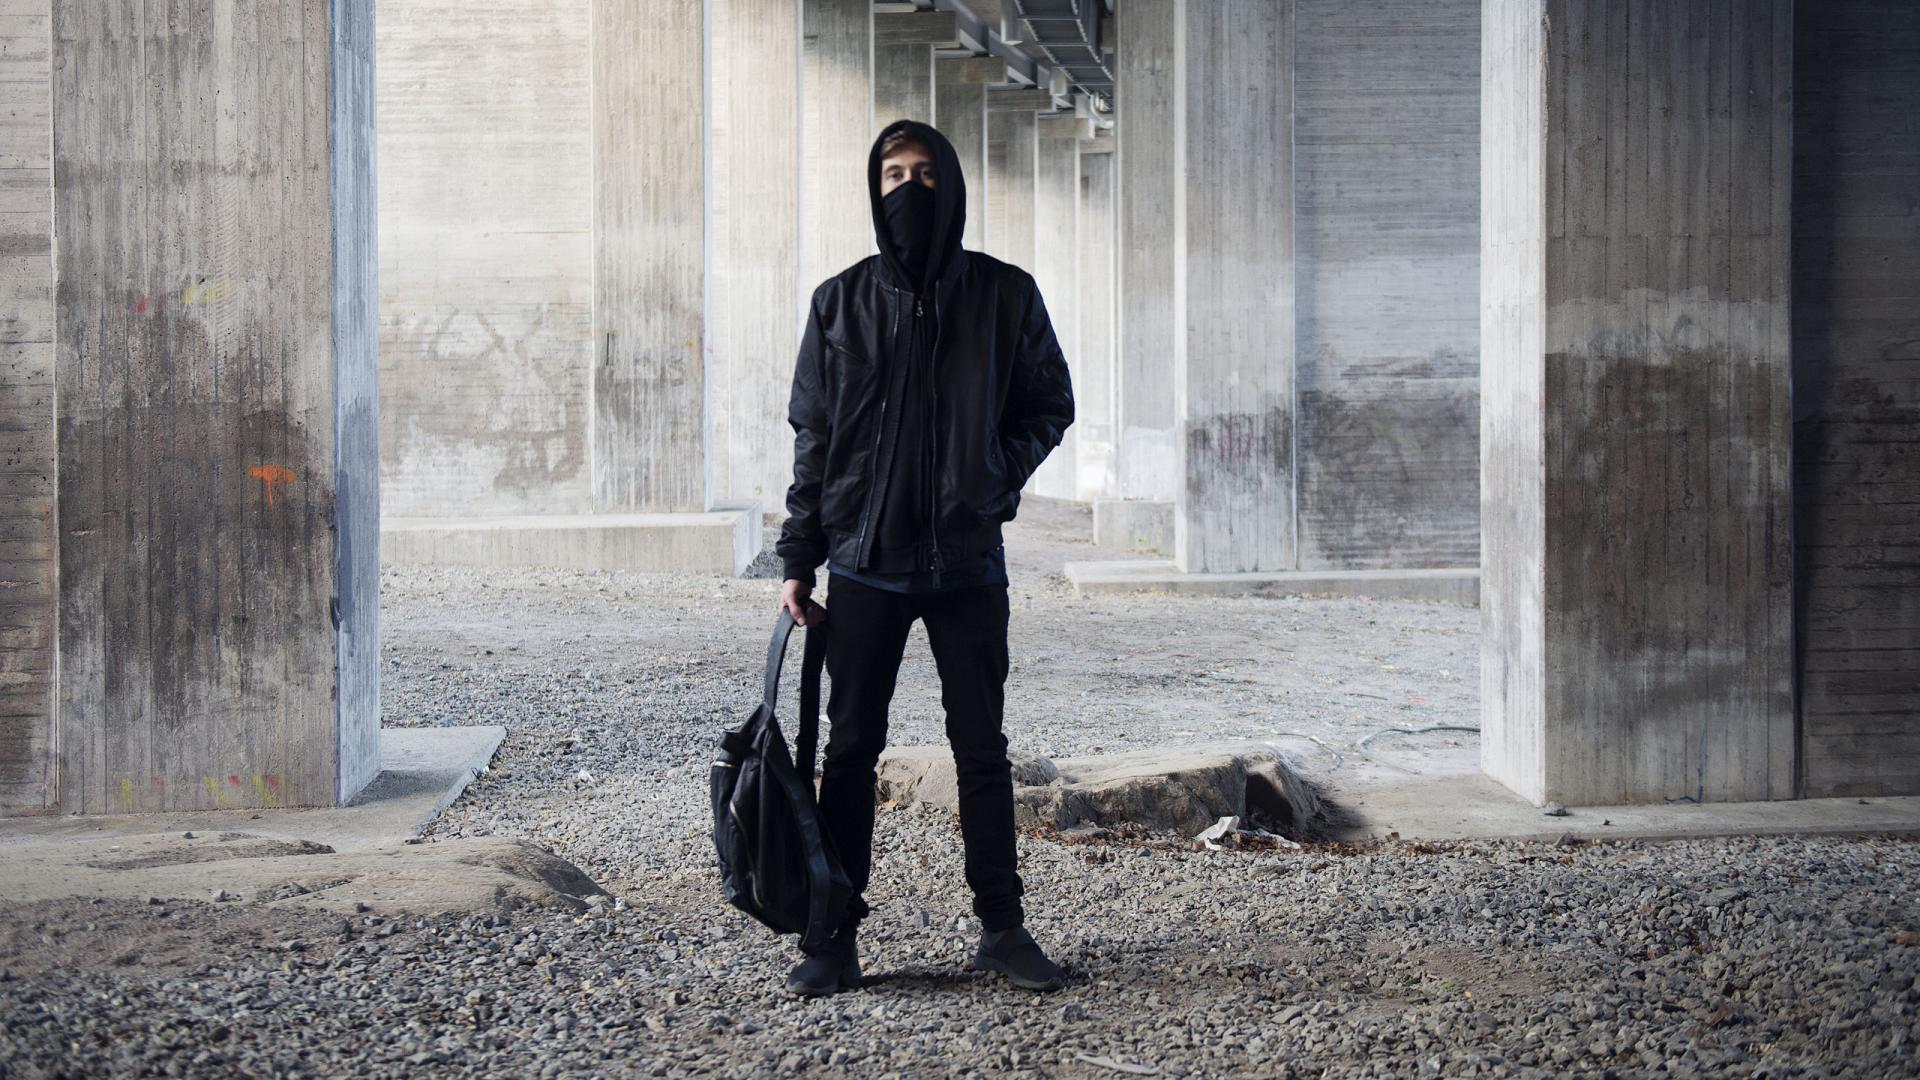 Alan Walker Face and Full Body Wallpaper | HD Wallpapers for Free ...